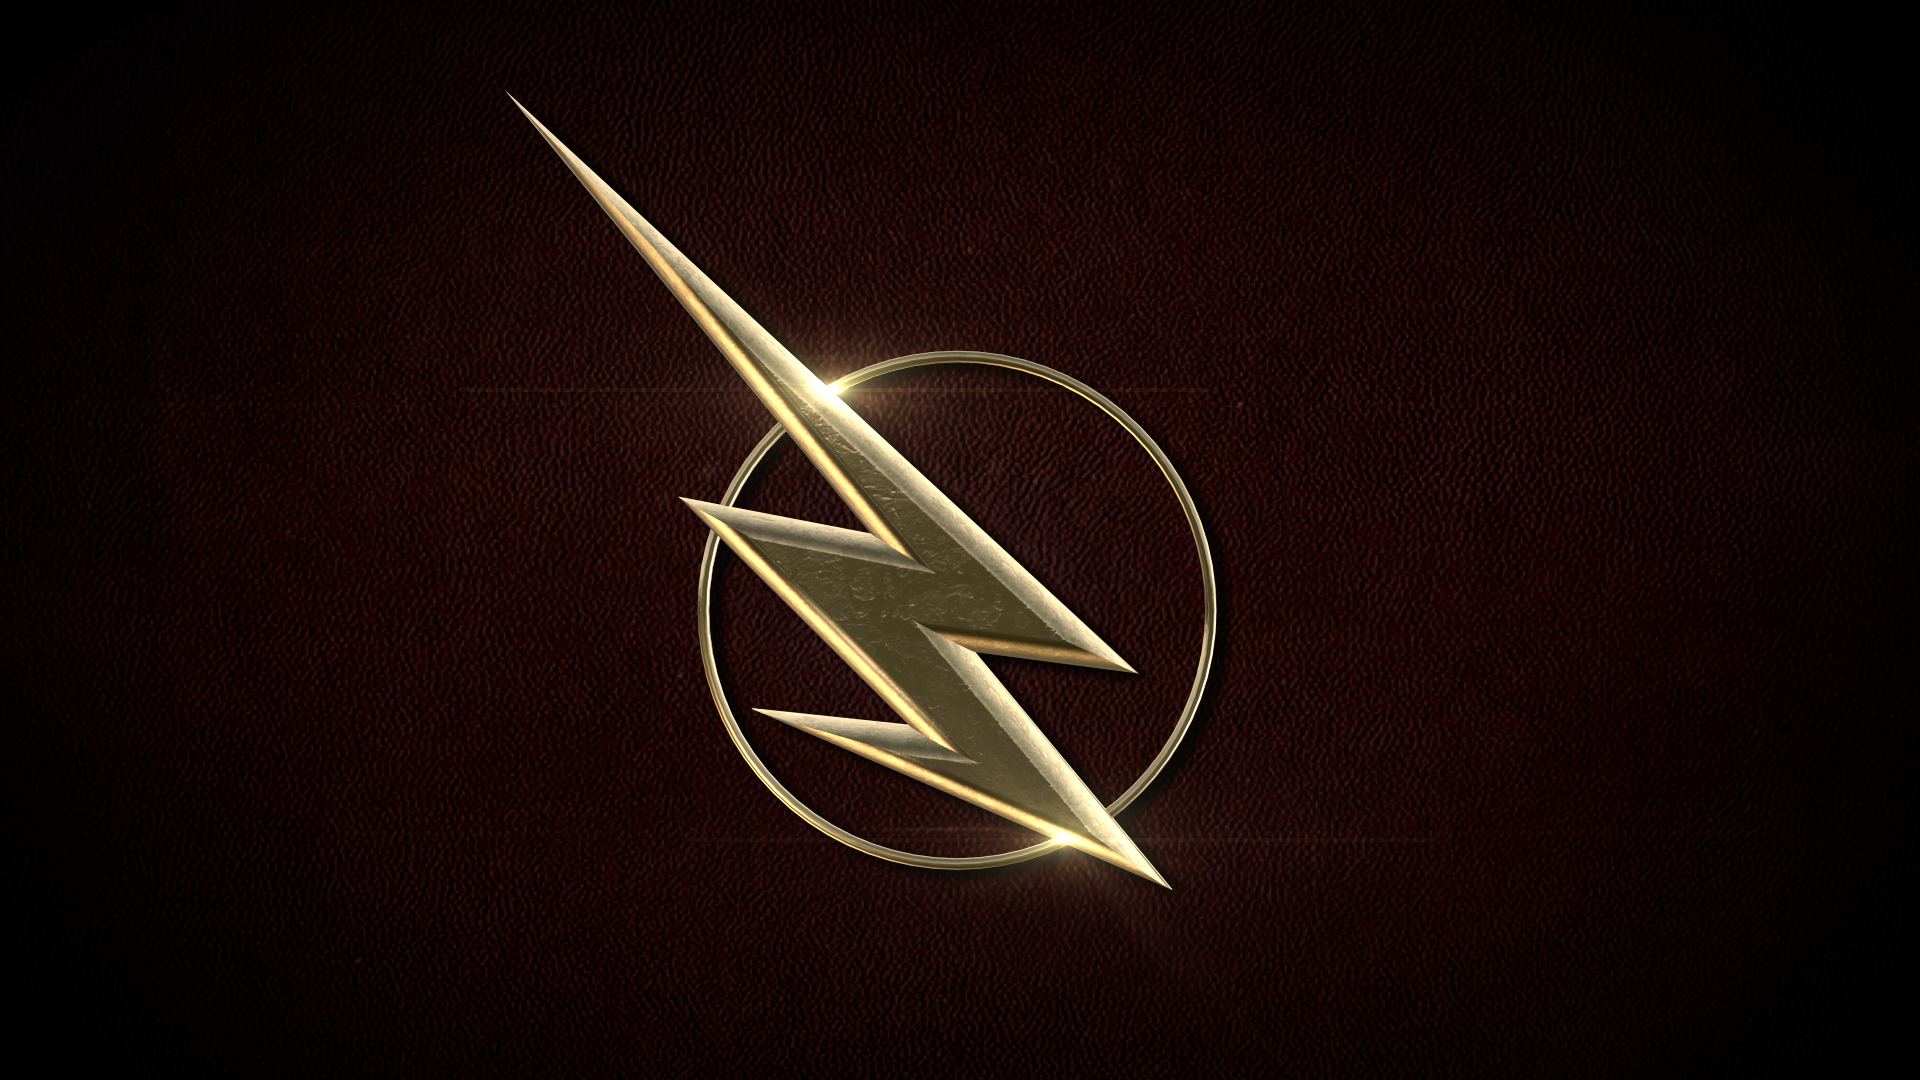 flash logo creator: